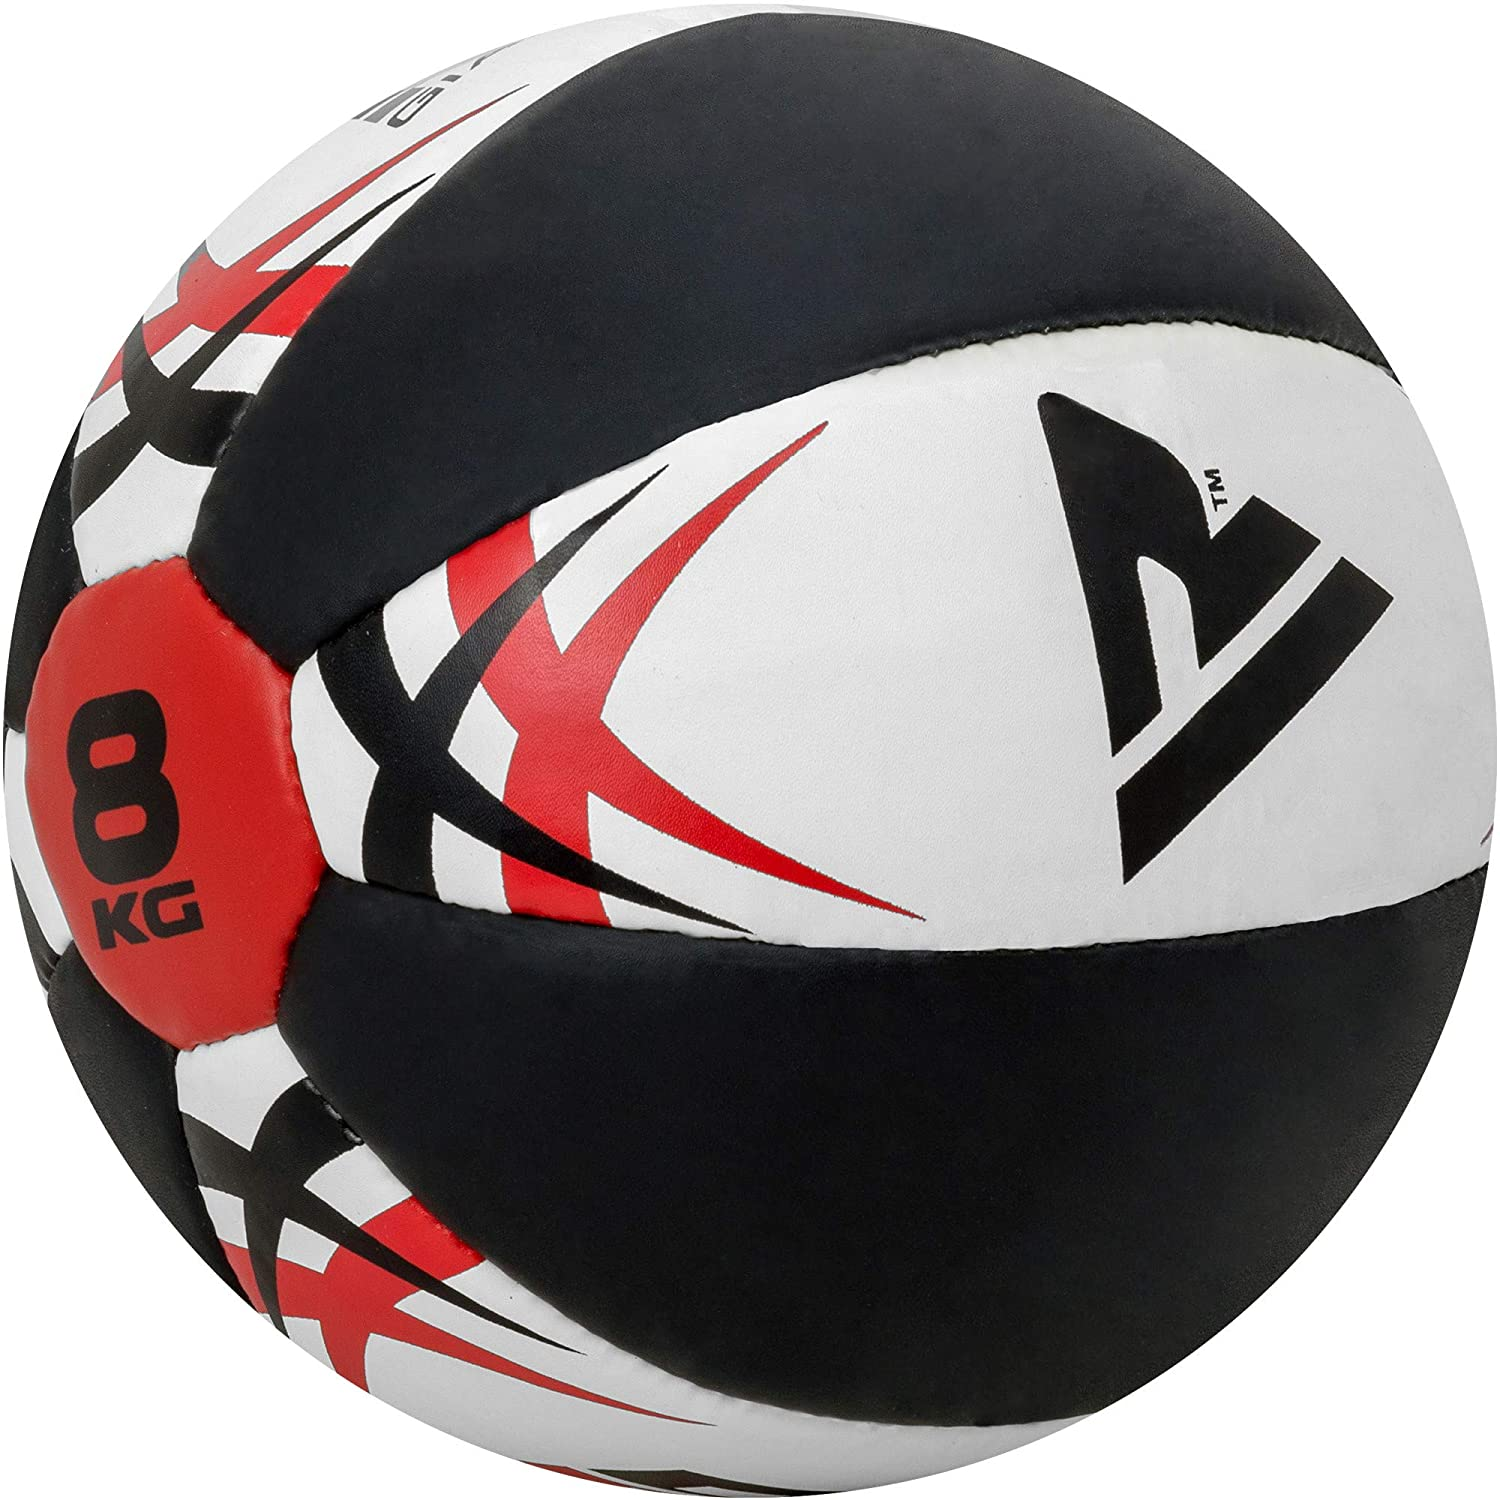 RDX Medicine Ball Gym Abs Exercises Leather Weighted Med Ball for Functional Training Fitness Great for Cleans, Throws, Crunches Available in 5,8,10 and 12KG